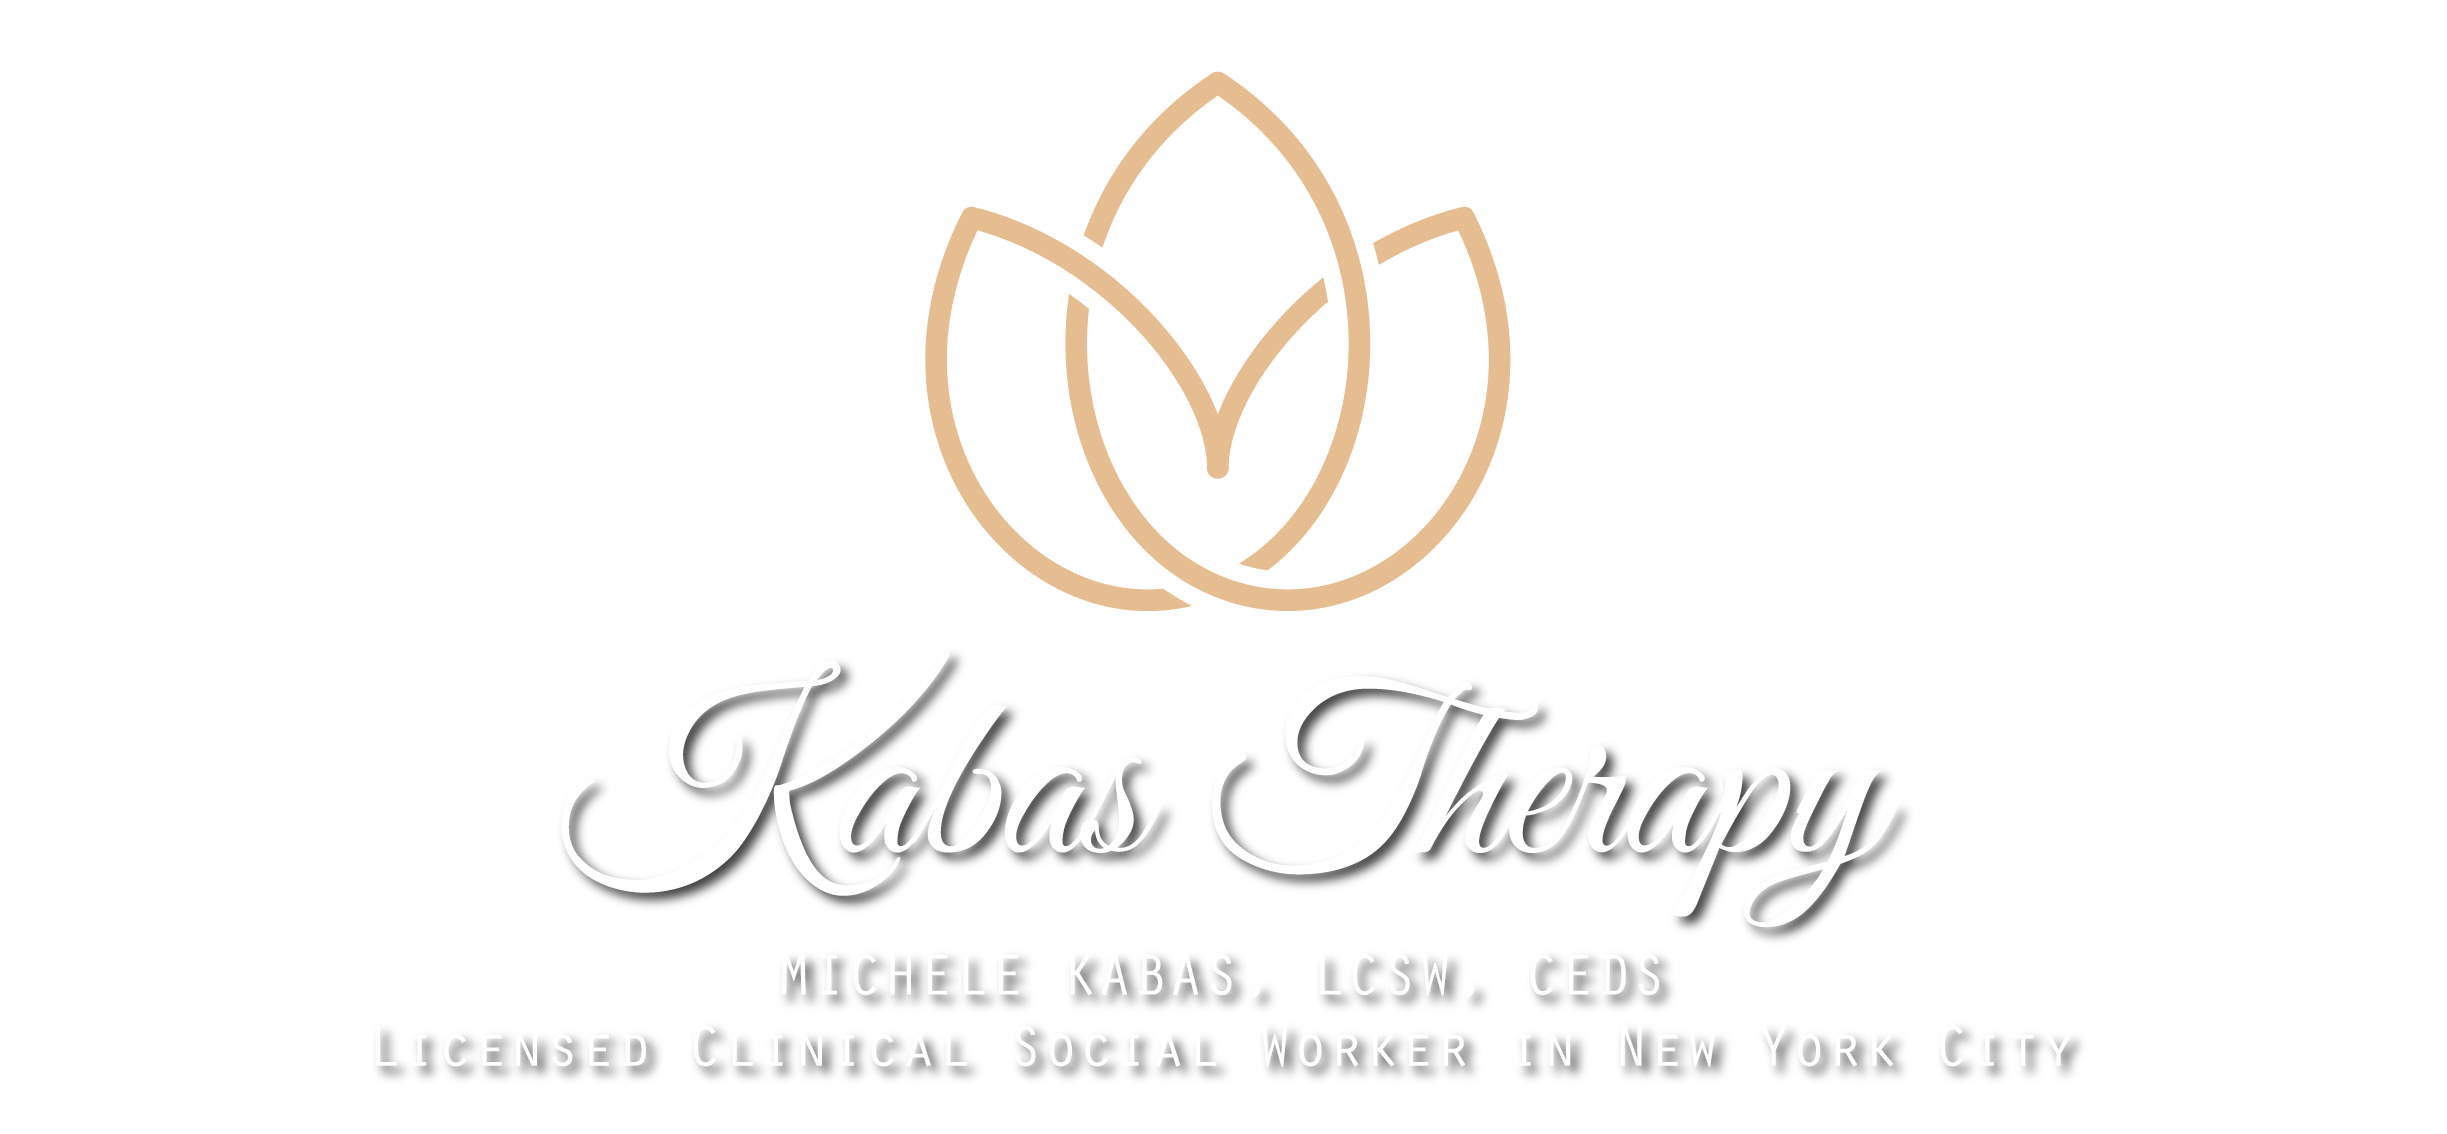 Michele Kabas, LCSW, CEDS